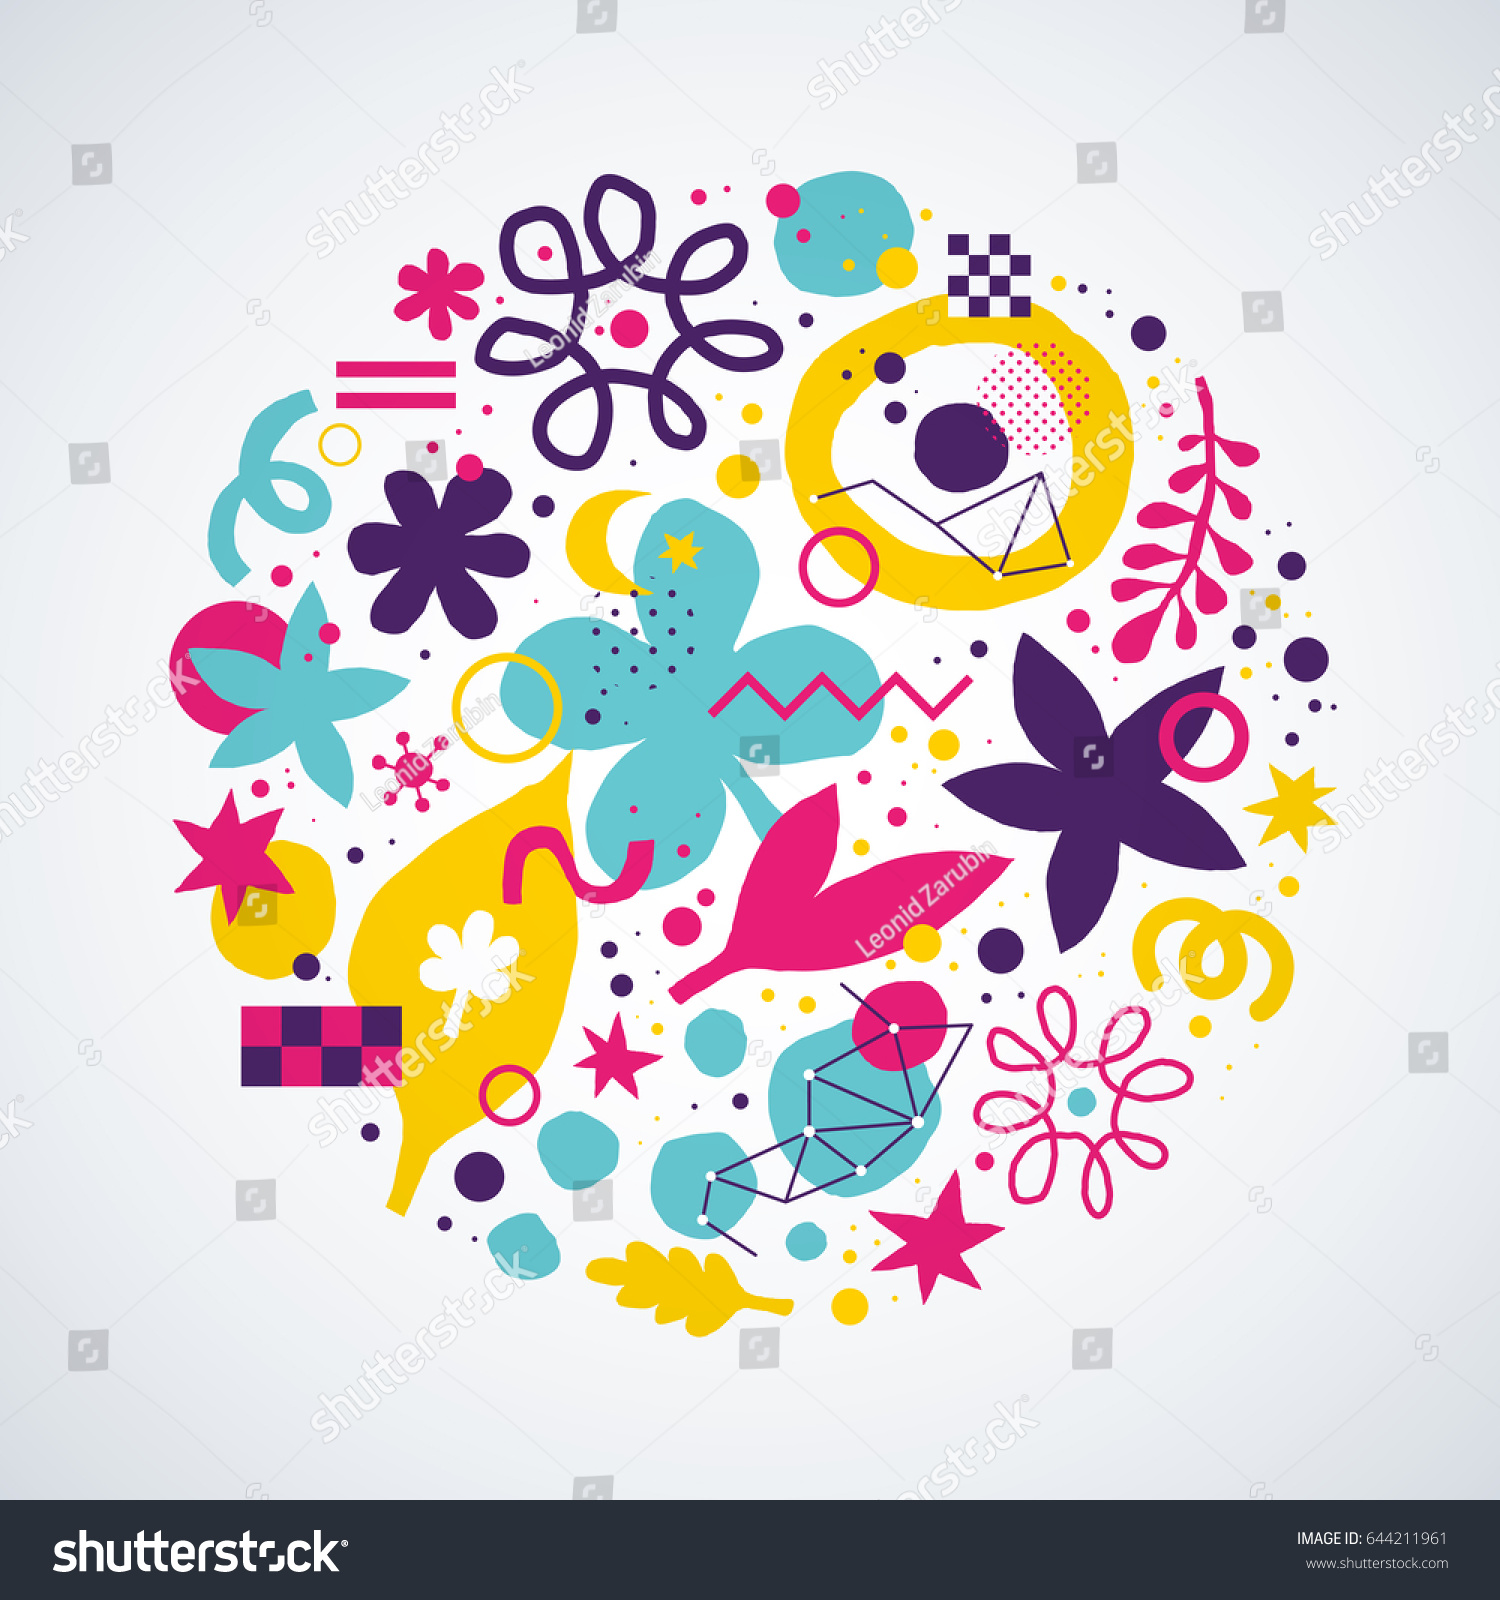 Vector Background Template Funky Hand Drawn Stock Vector 644211961 ...